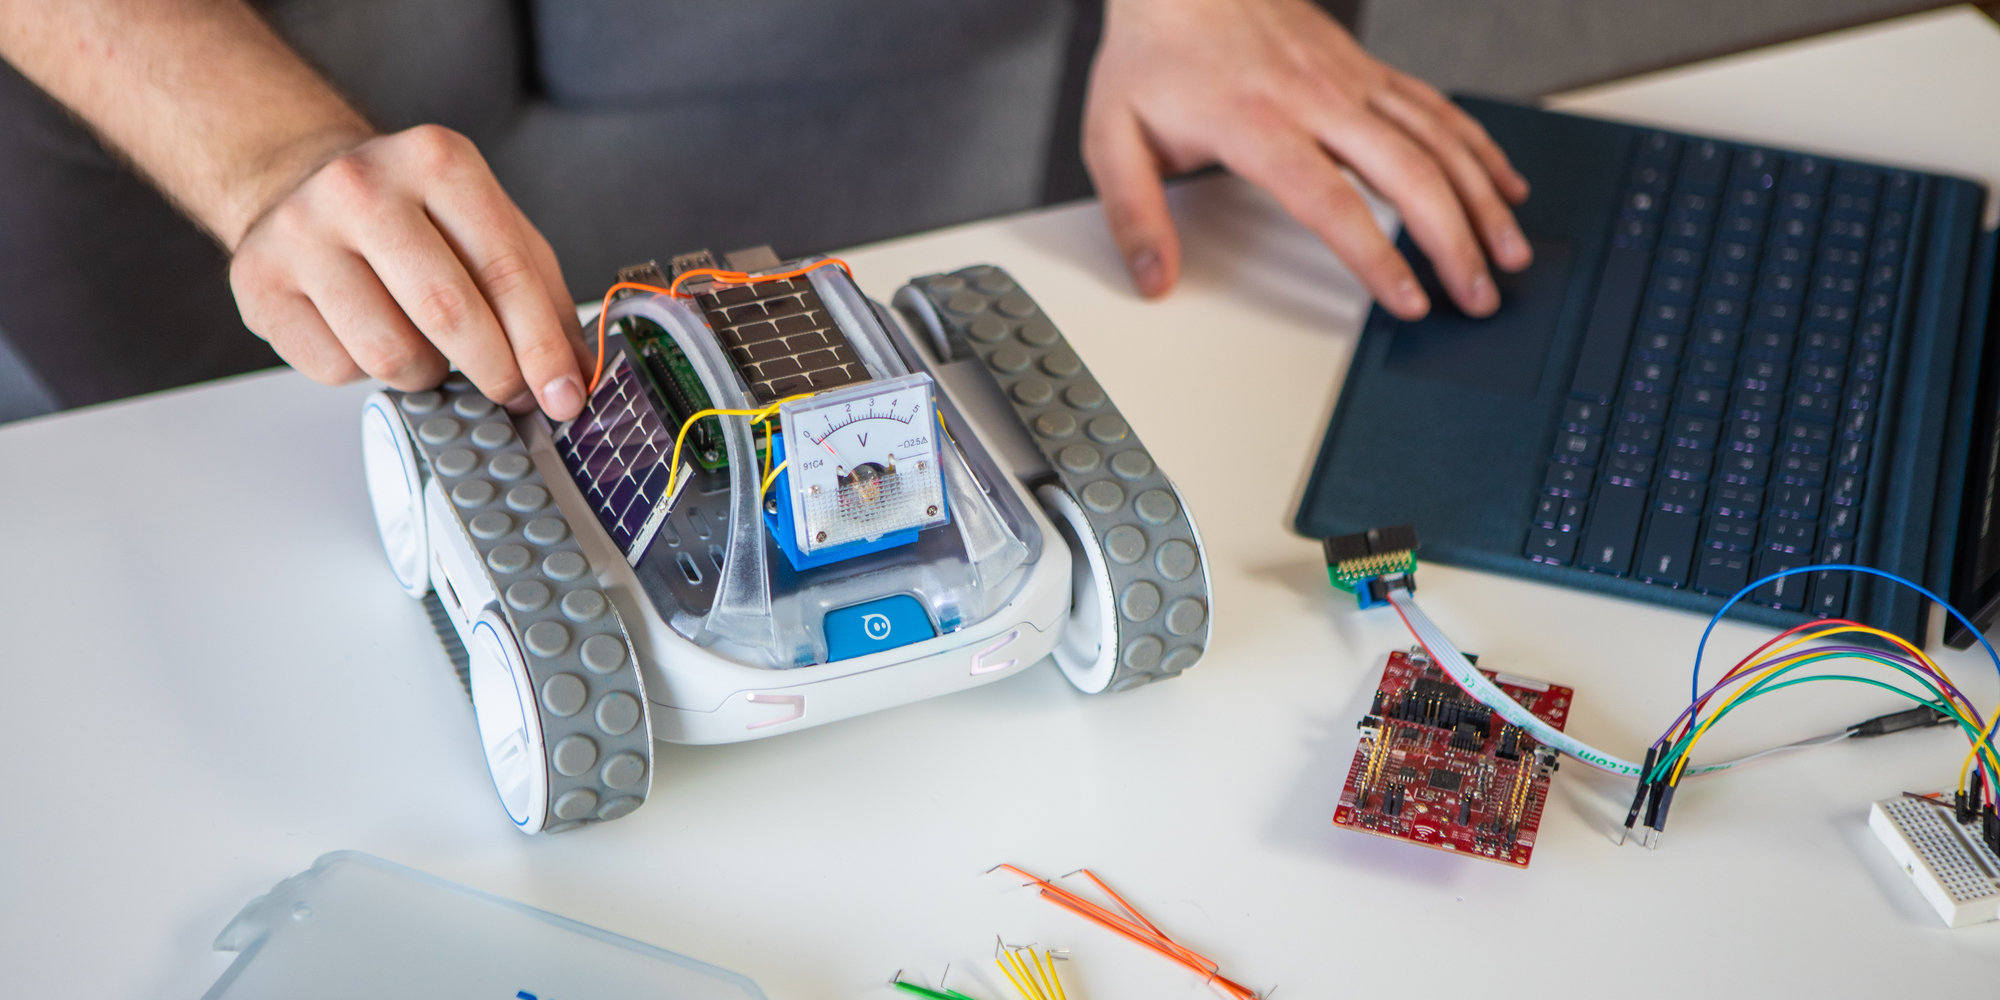 Sphero launches RVR, its first fully programmable robot that integrates with Raspberry Pi